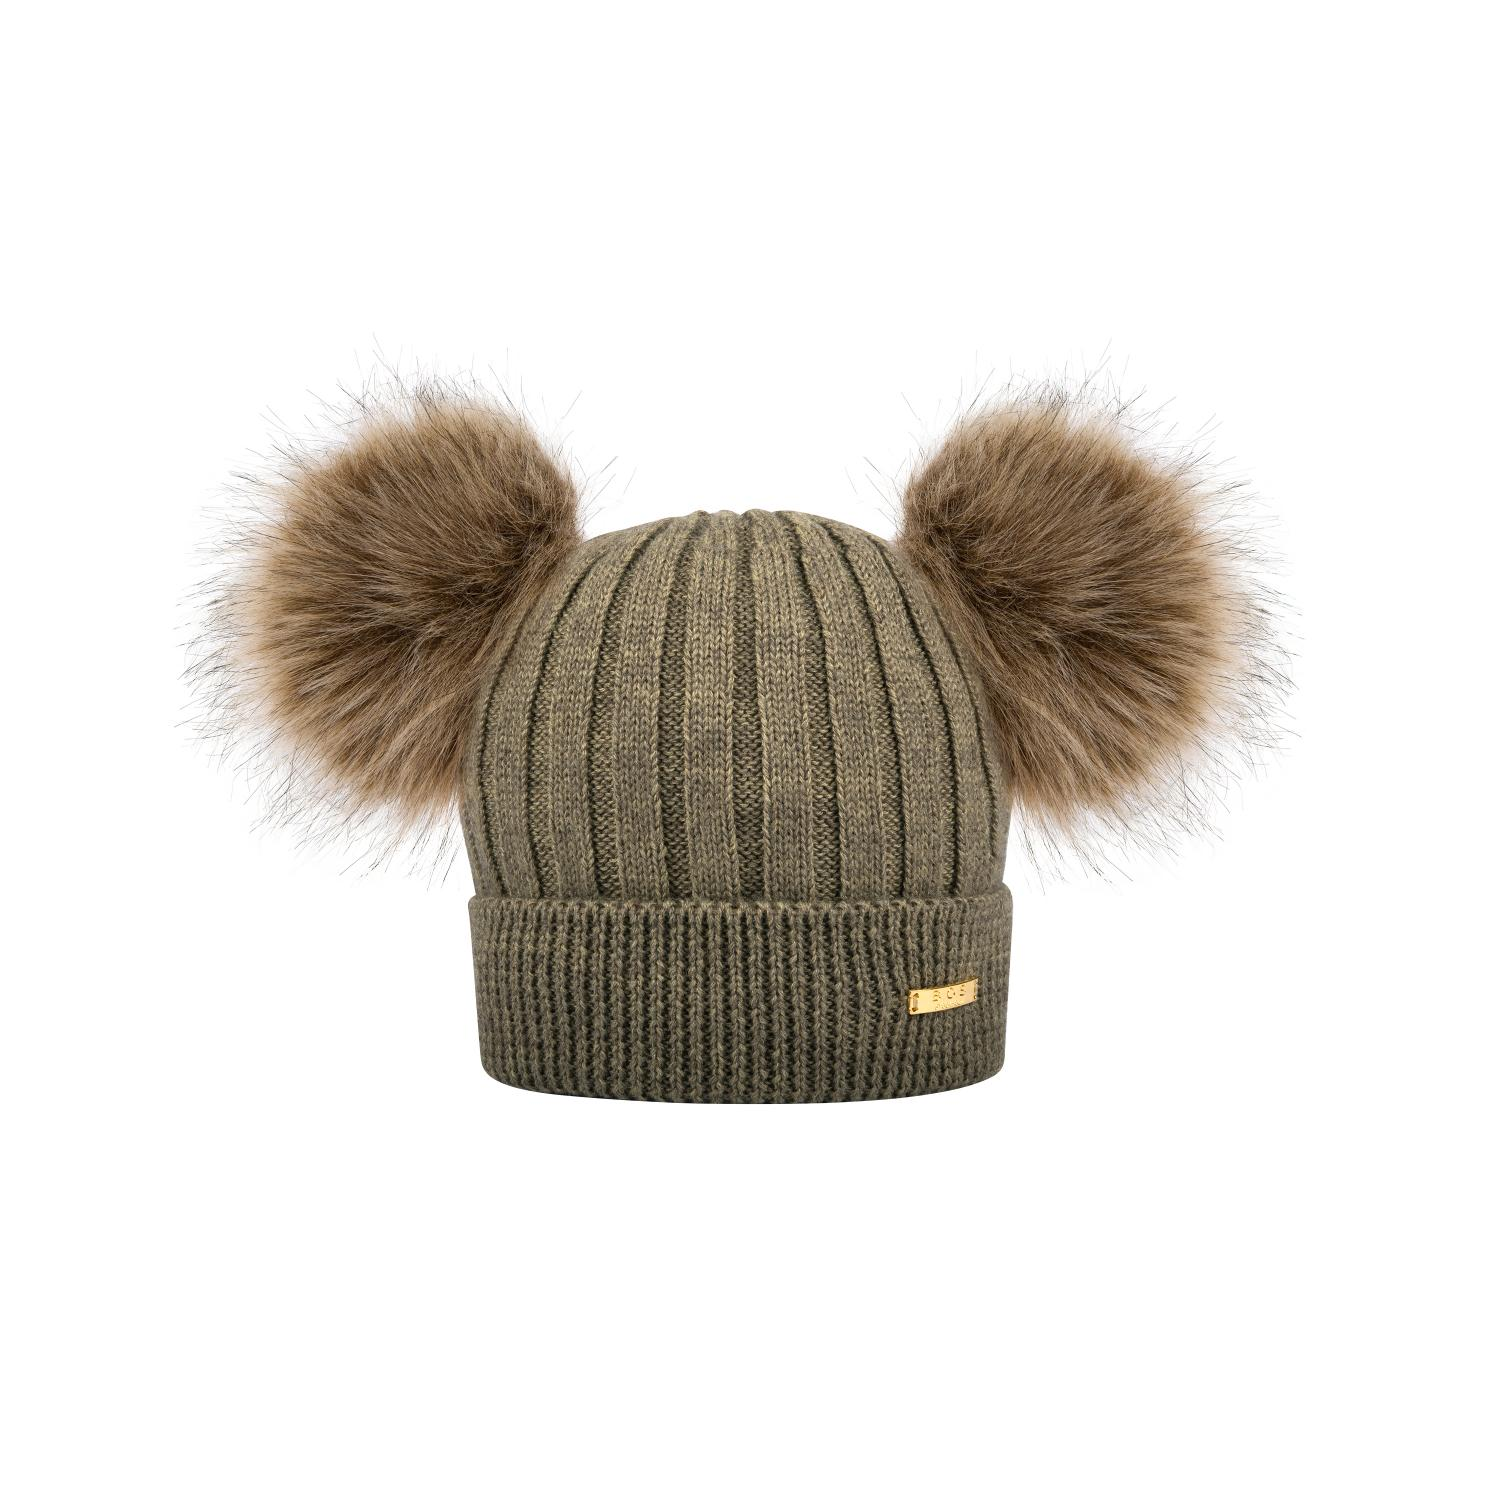 Knitted winter hat  Khaki